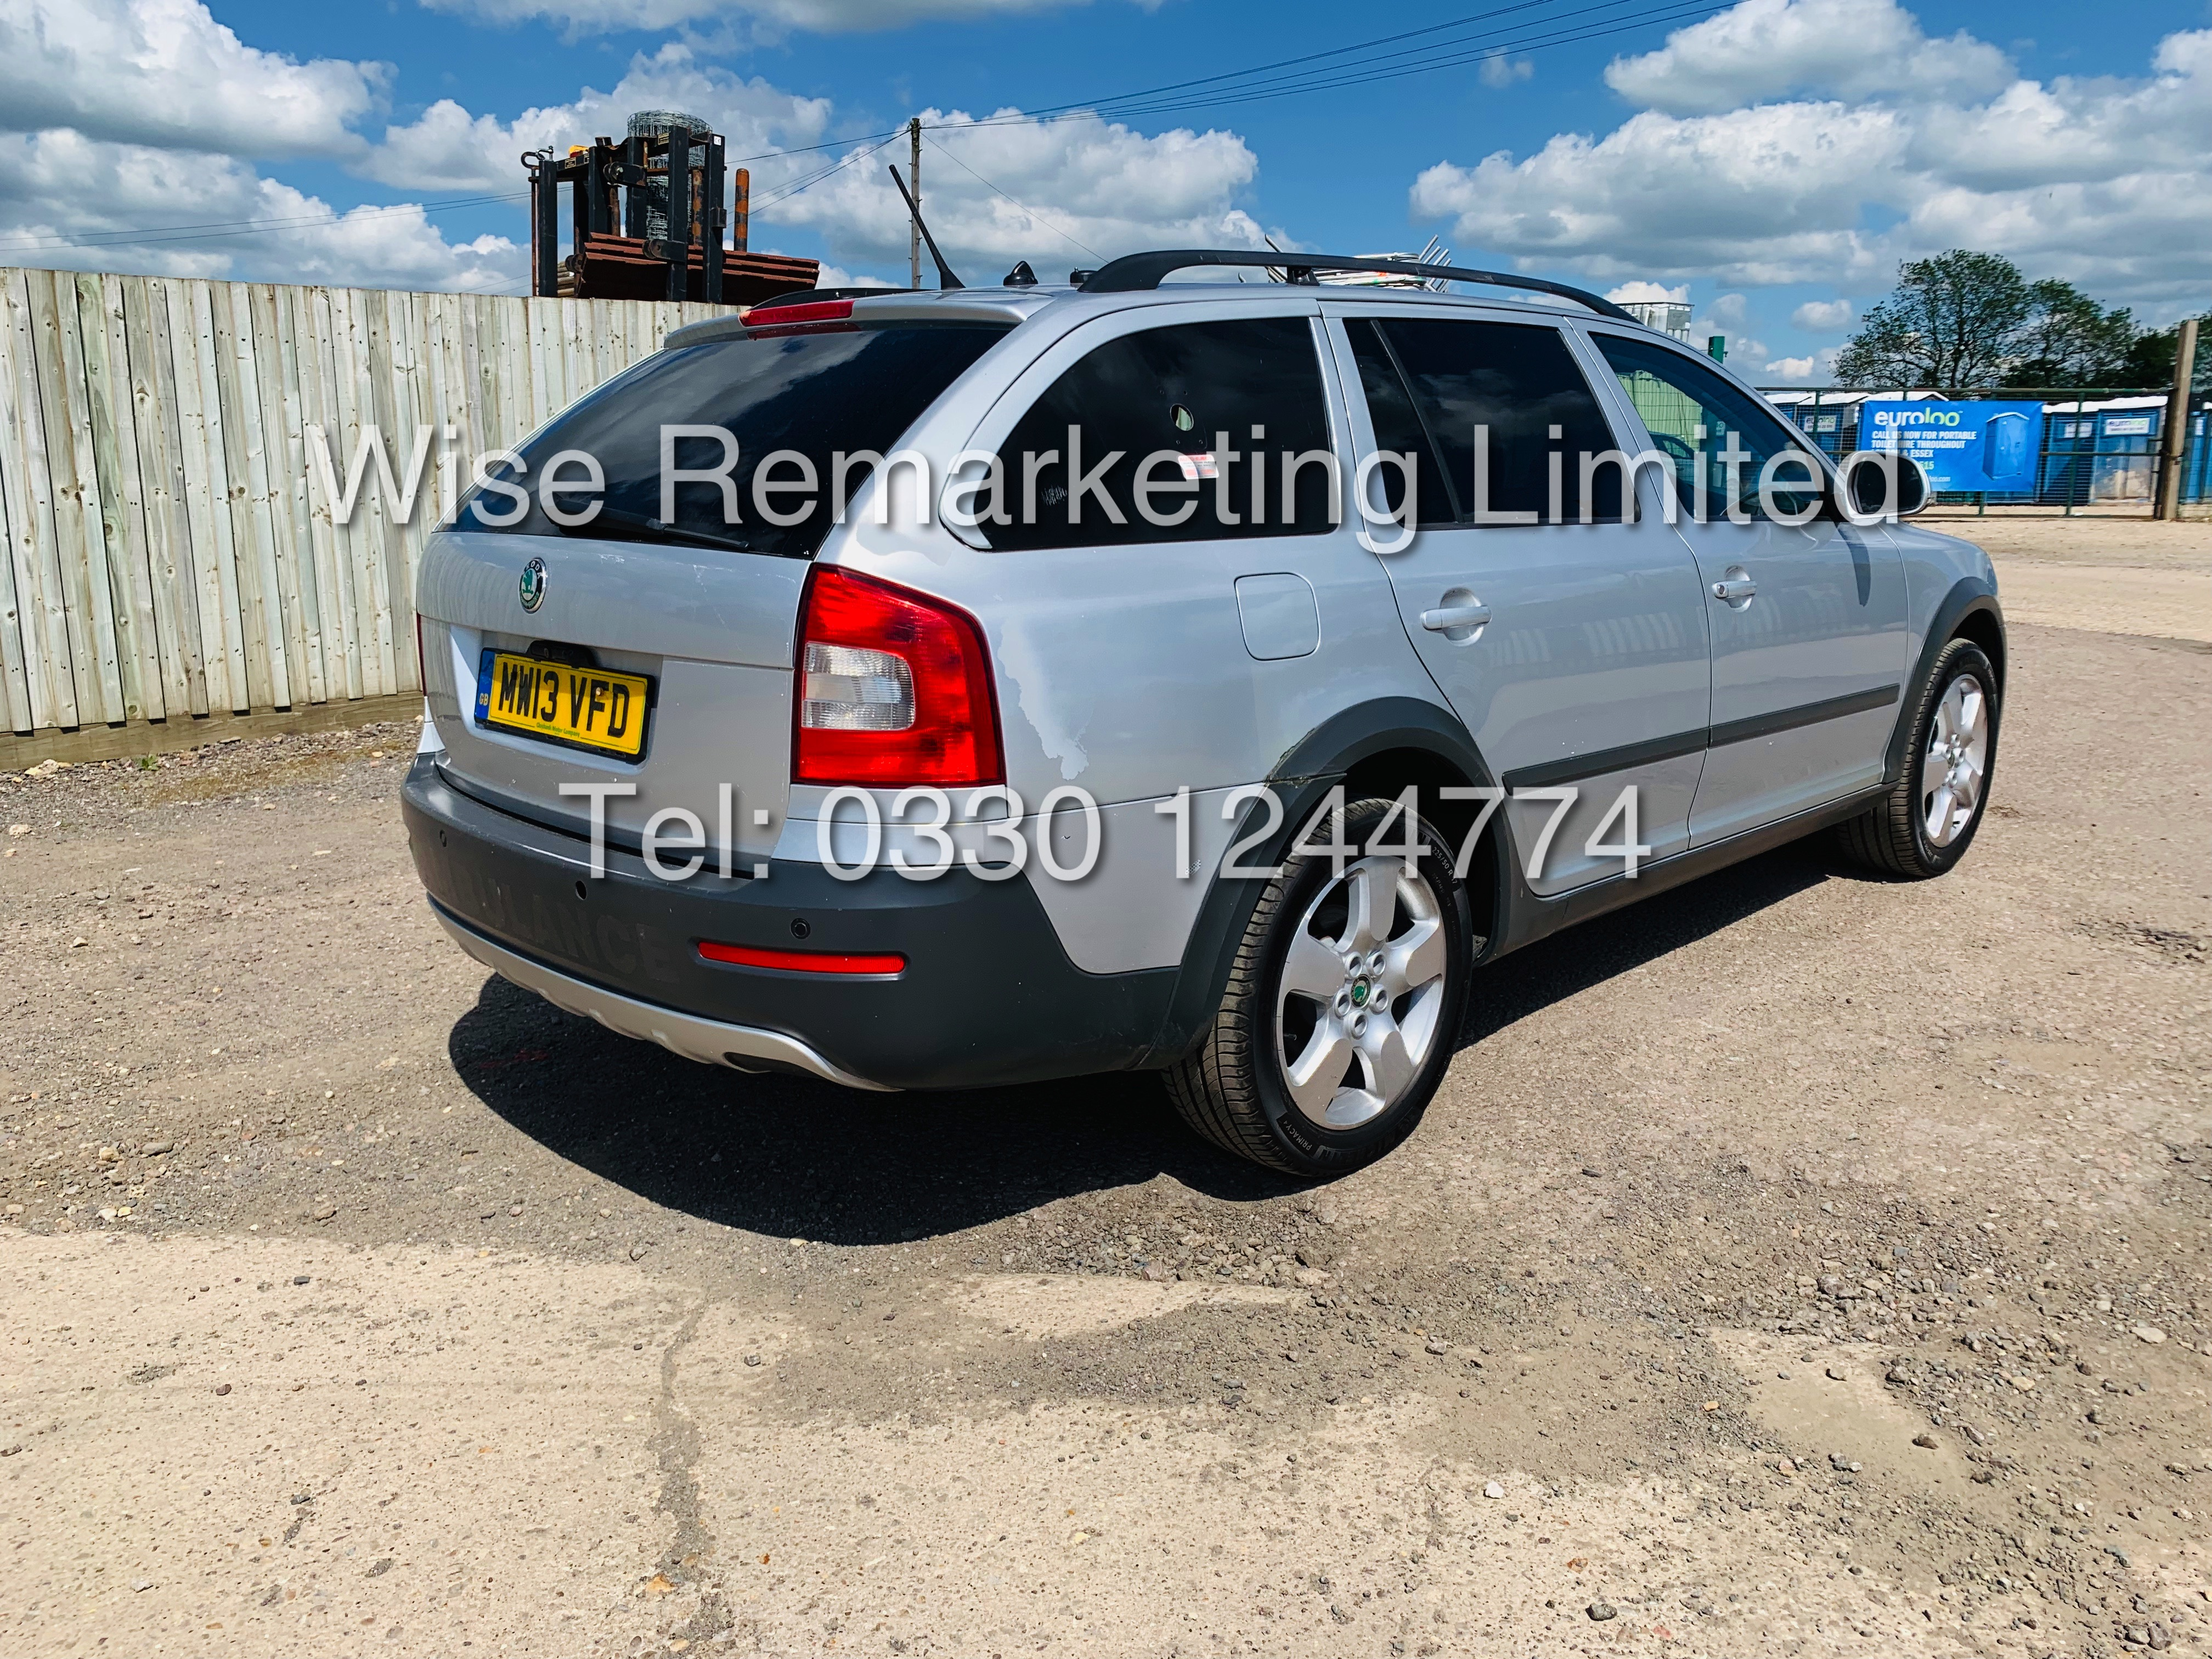 SKODA OCTAVIA (SCOUT) 2.0tdi DSG AUTOMATIC ESTATE / 2013 / 1 OWNER WITH FULL HISTORY / 140BHP / 4x4 - Image 3 of 14